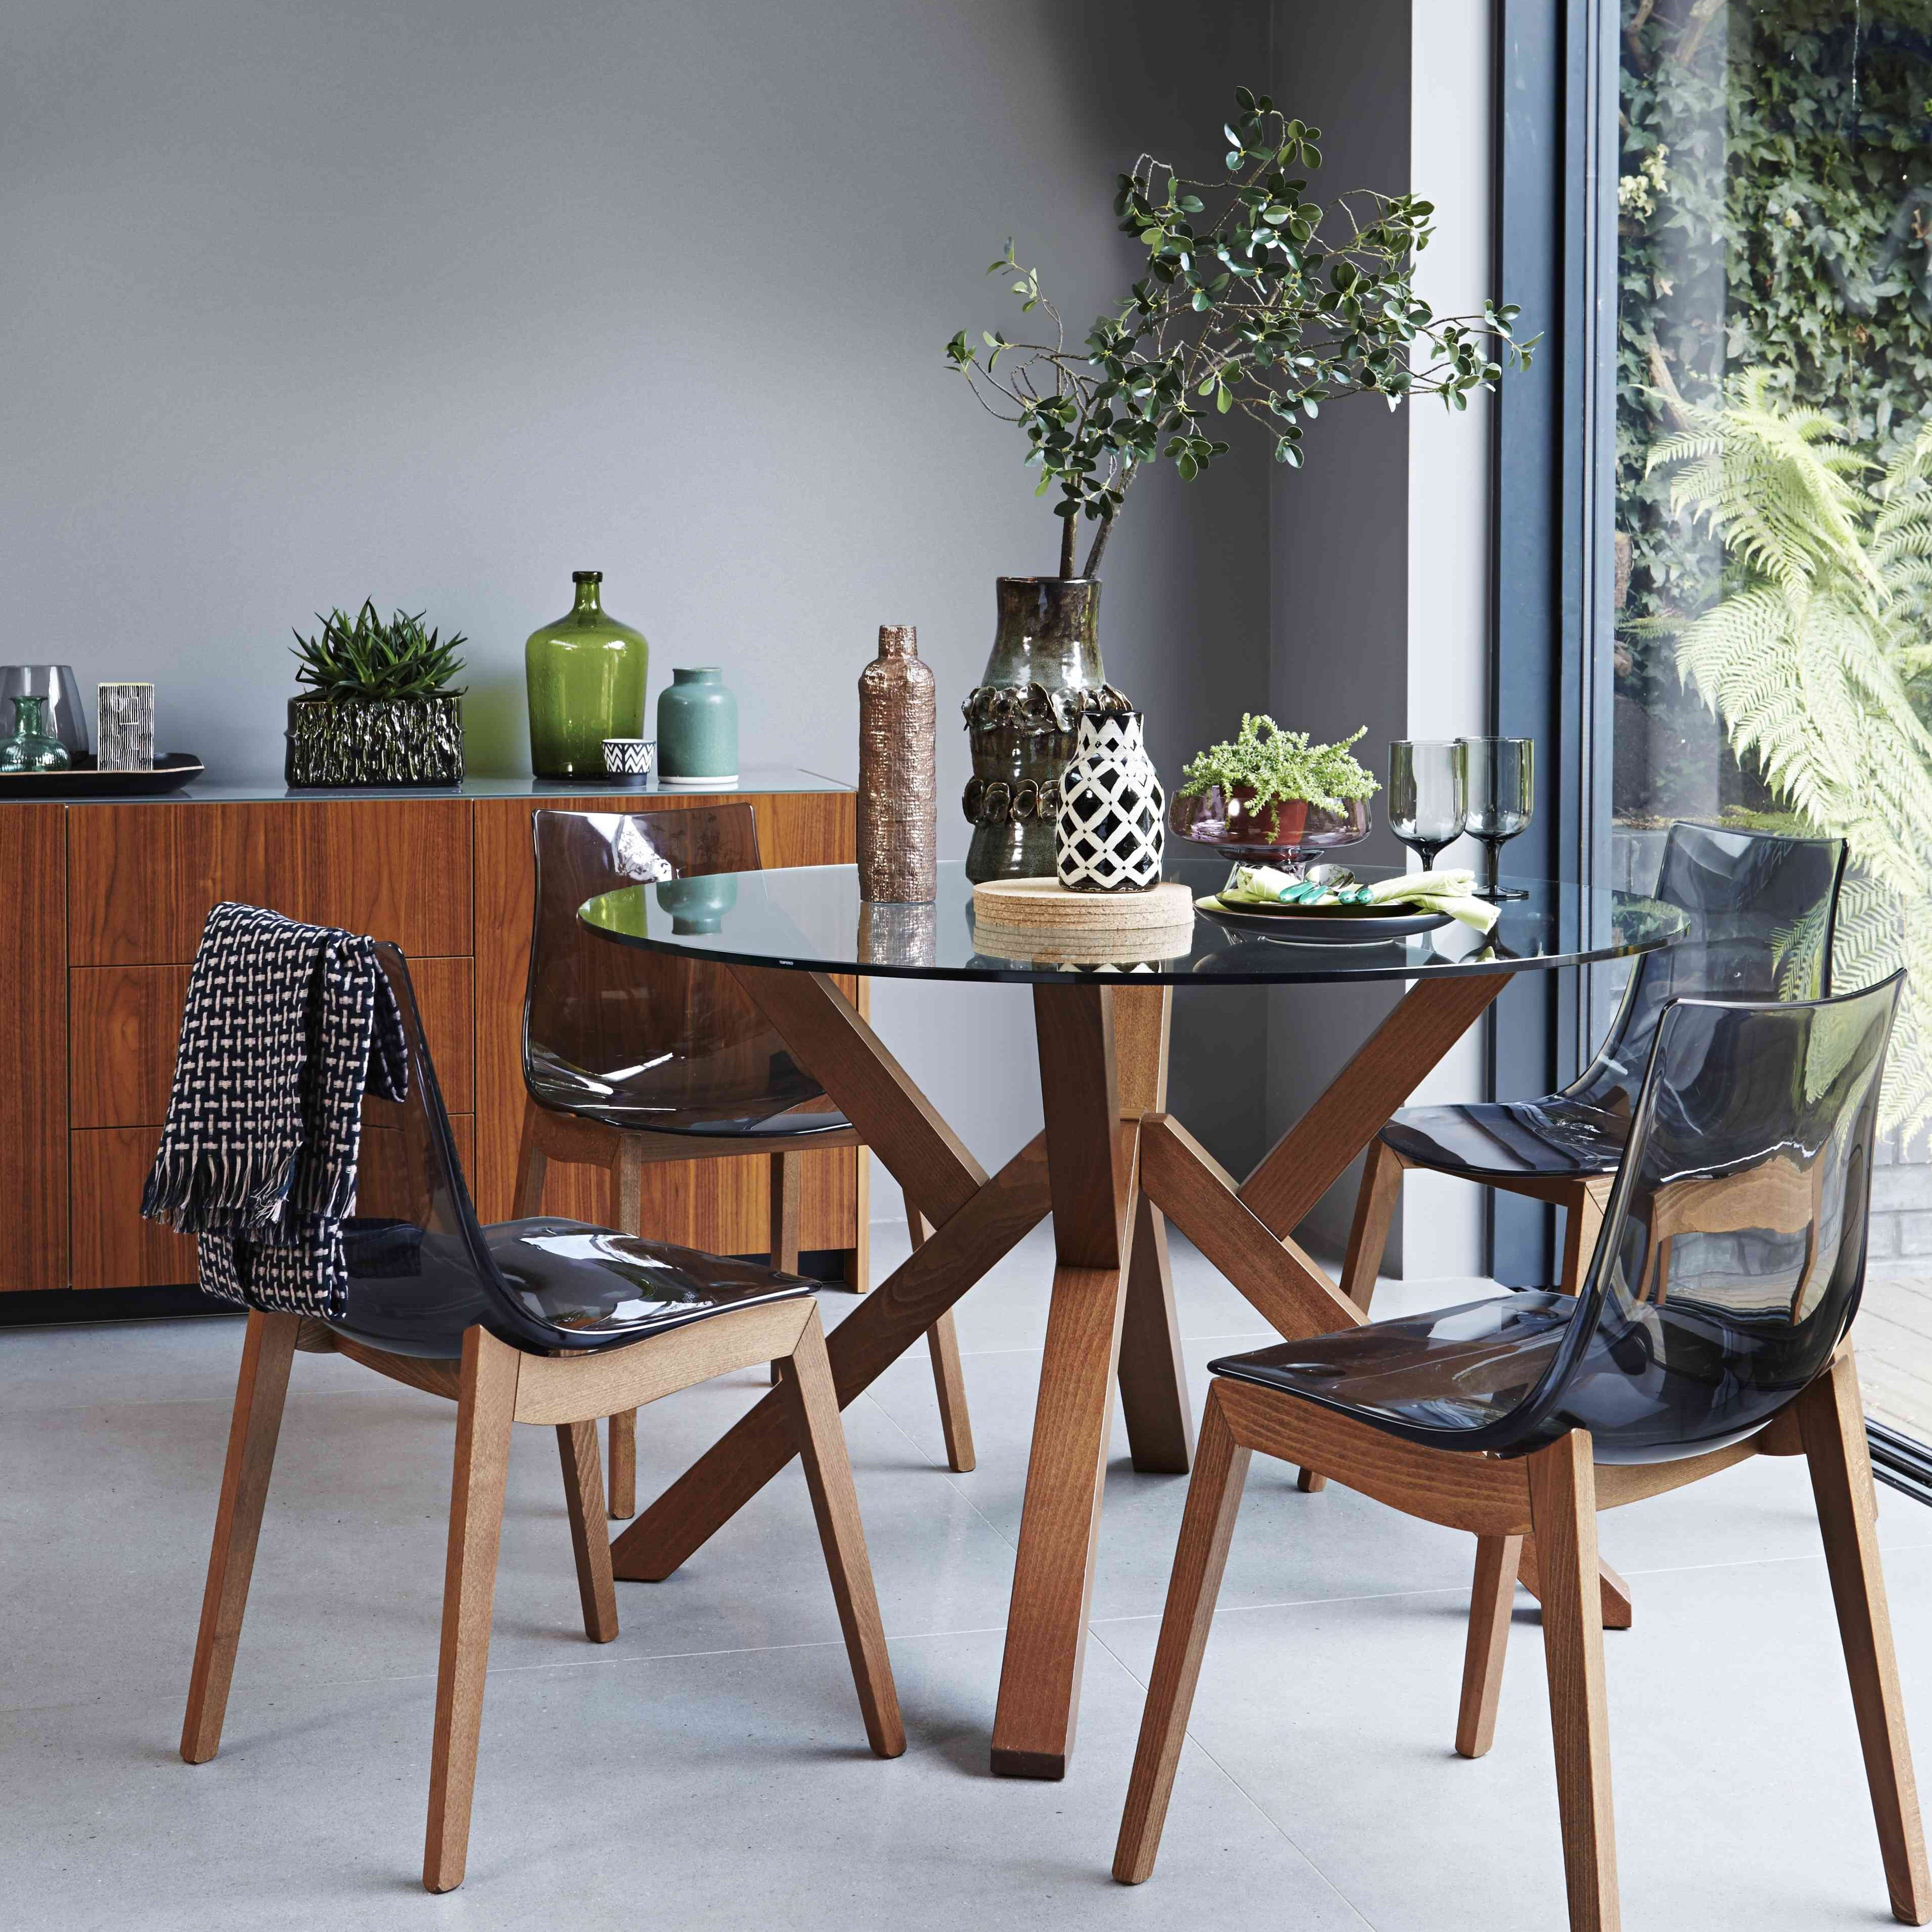 How to obtain the furniture village natural woodland style for Village furniture and design